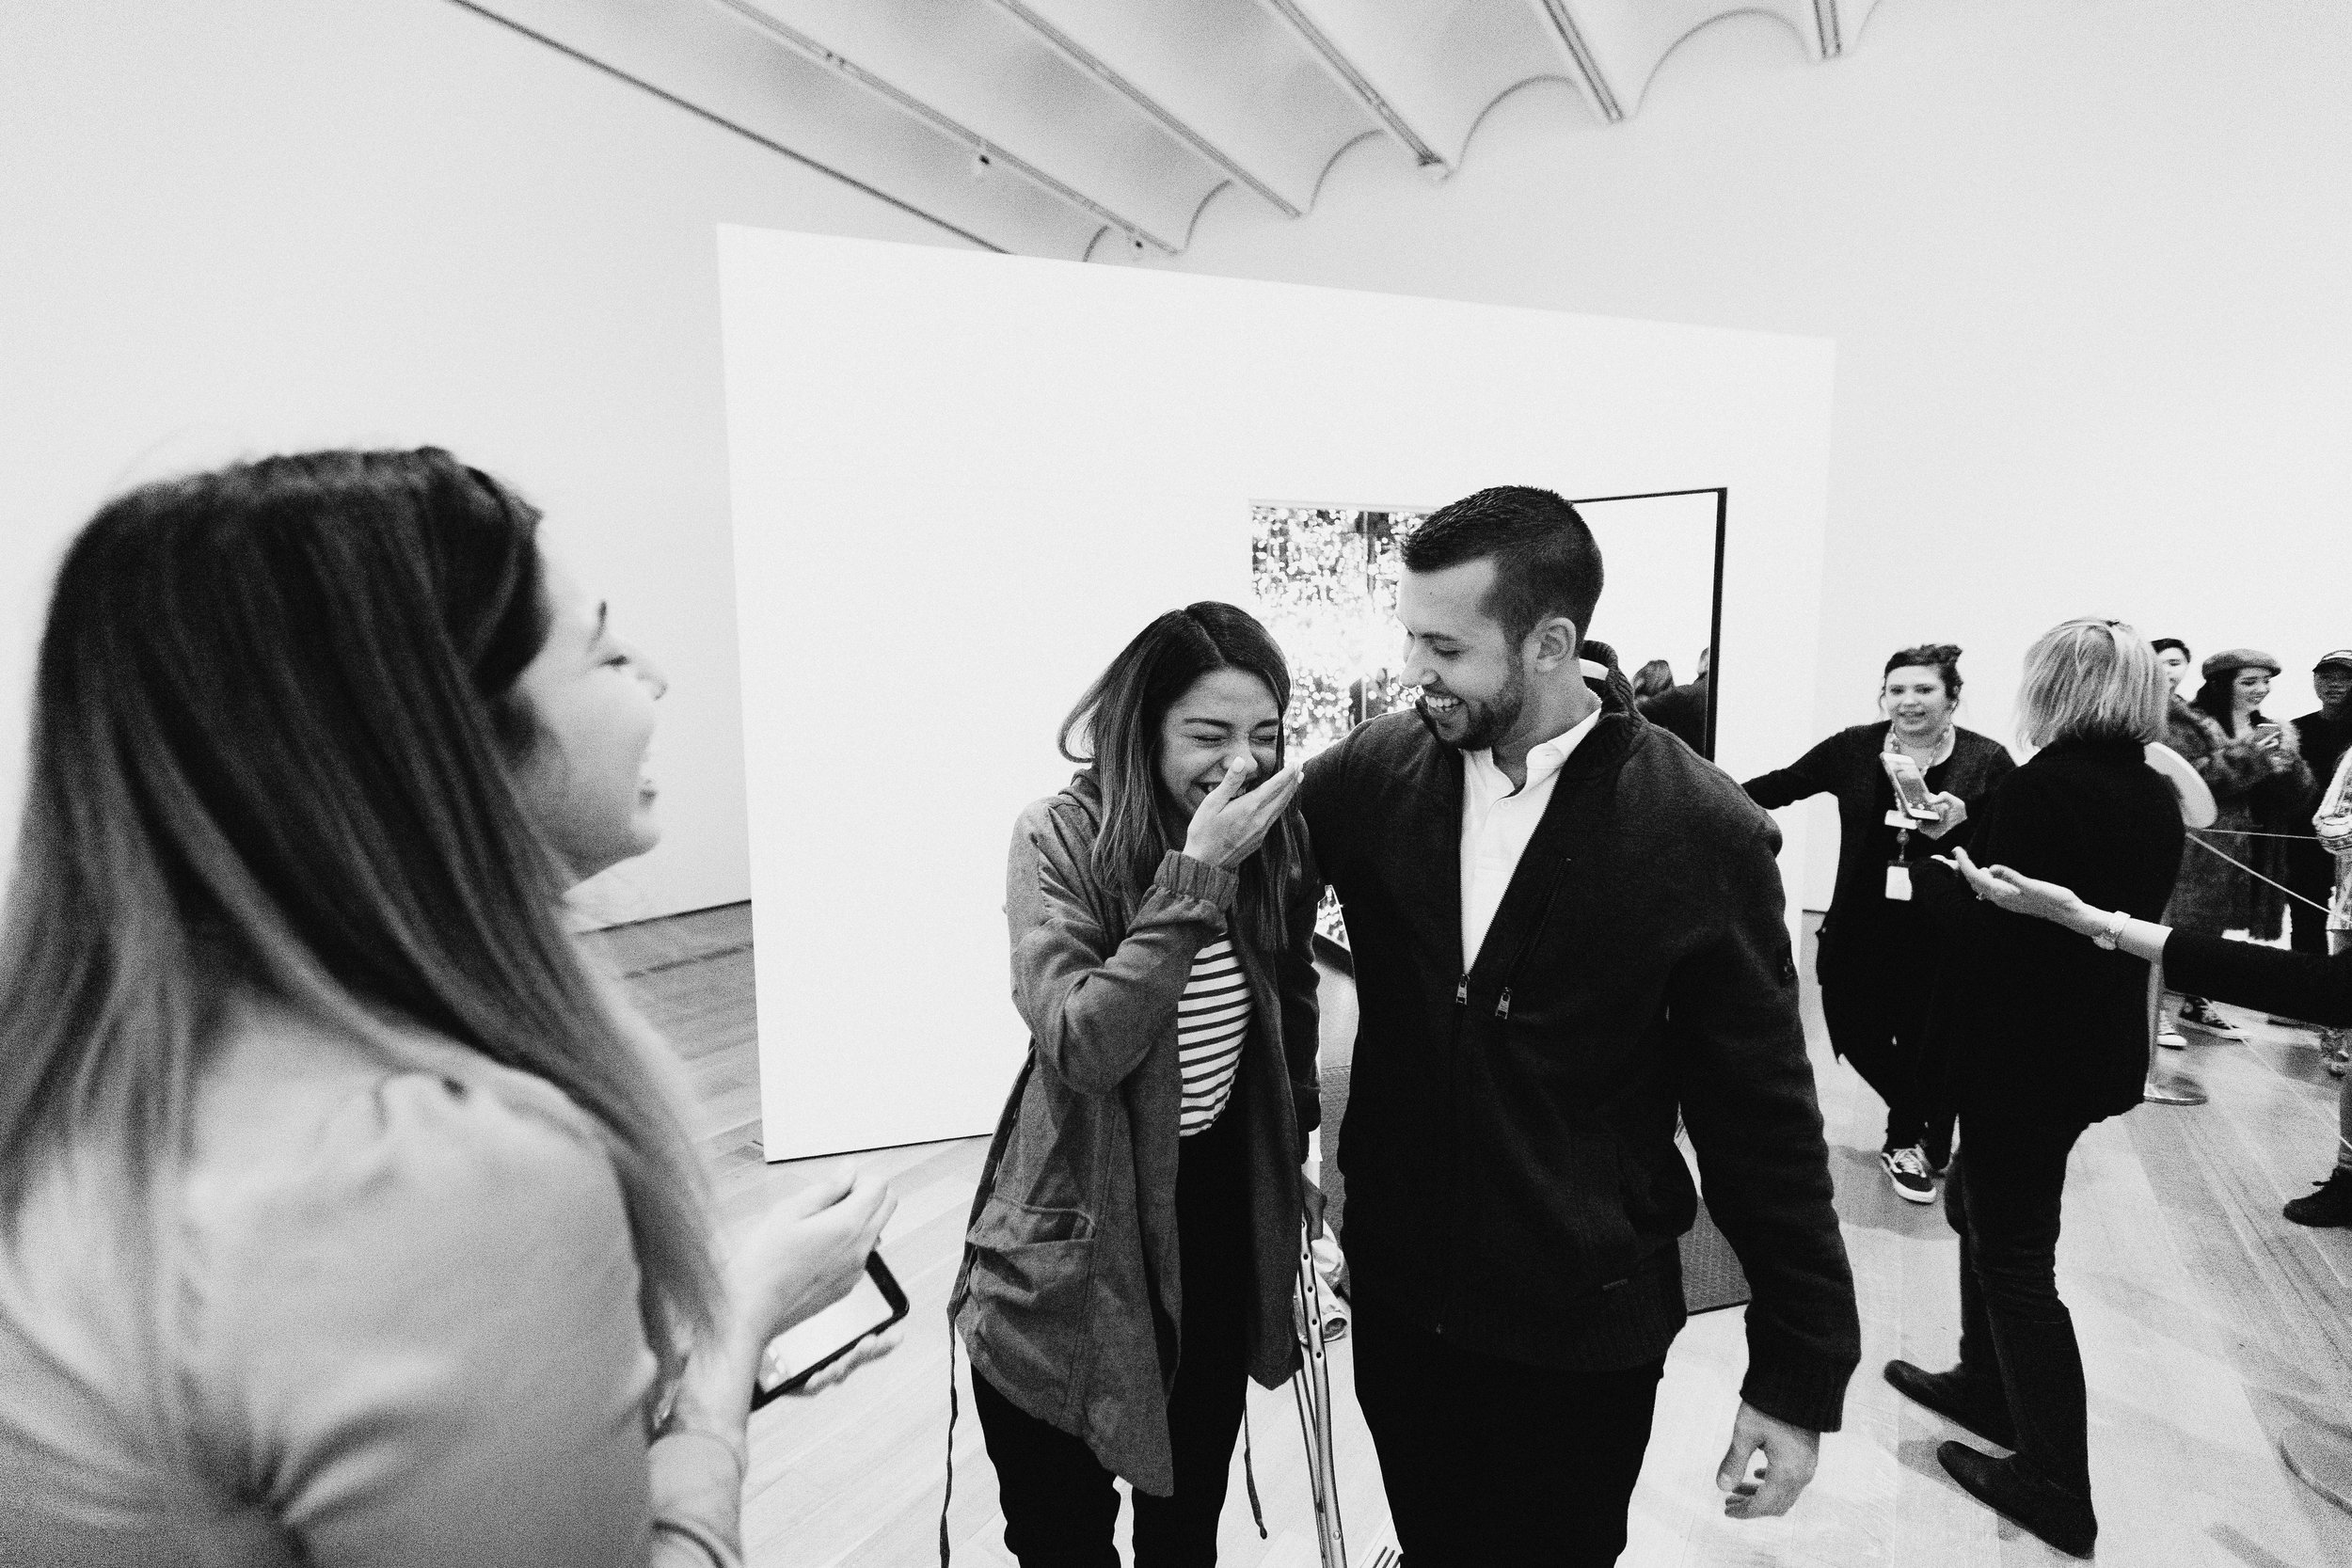 high_museum_infinity_mirrors_Yayoi_Kusama_proposal_amazing_atlanta_real_couple_engagement_ideas_epic_1034.jpg